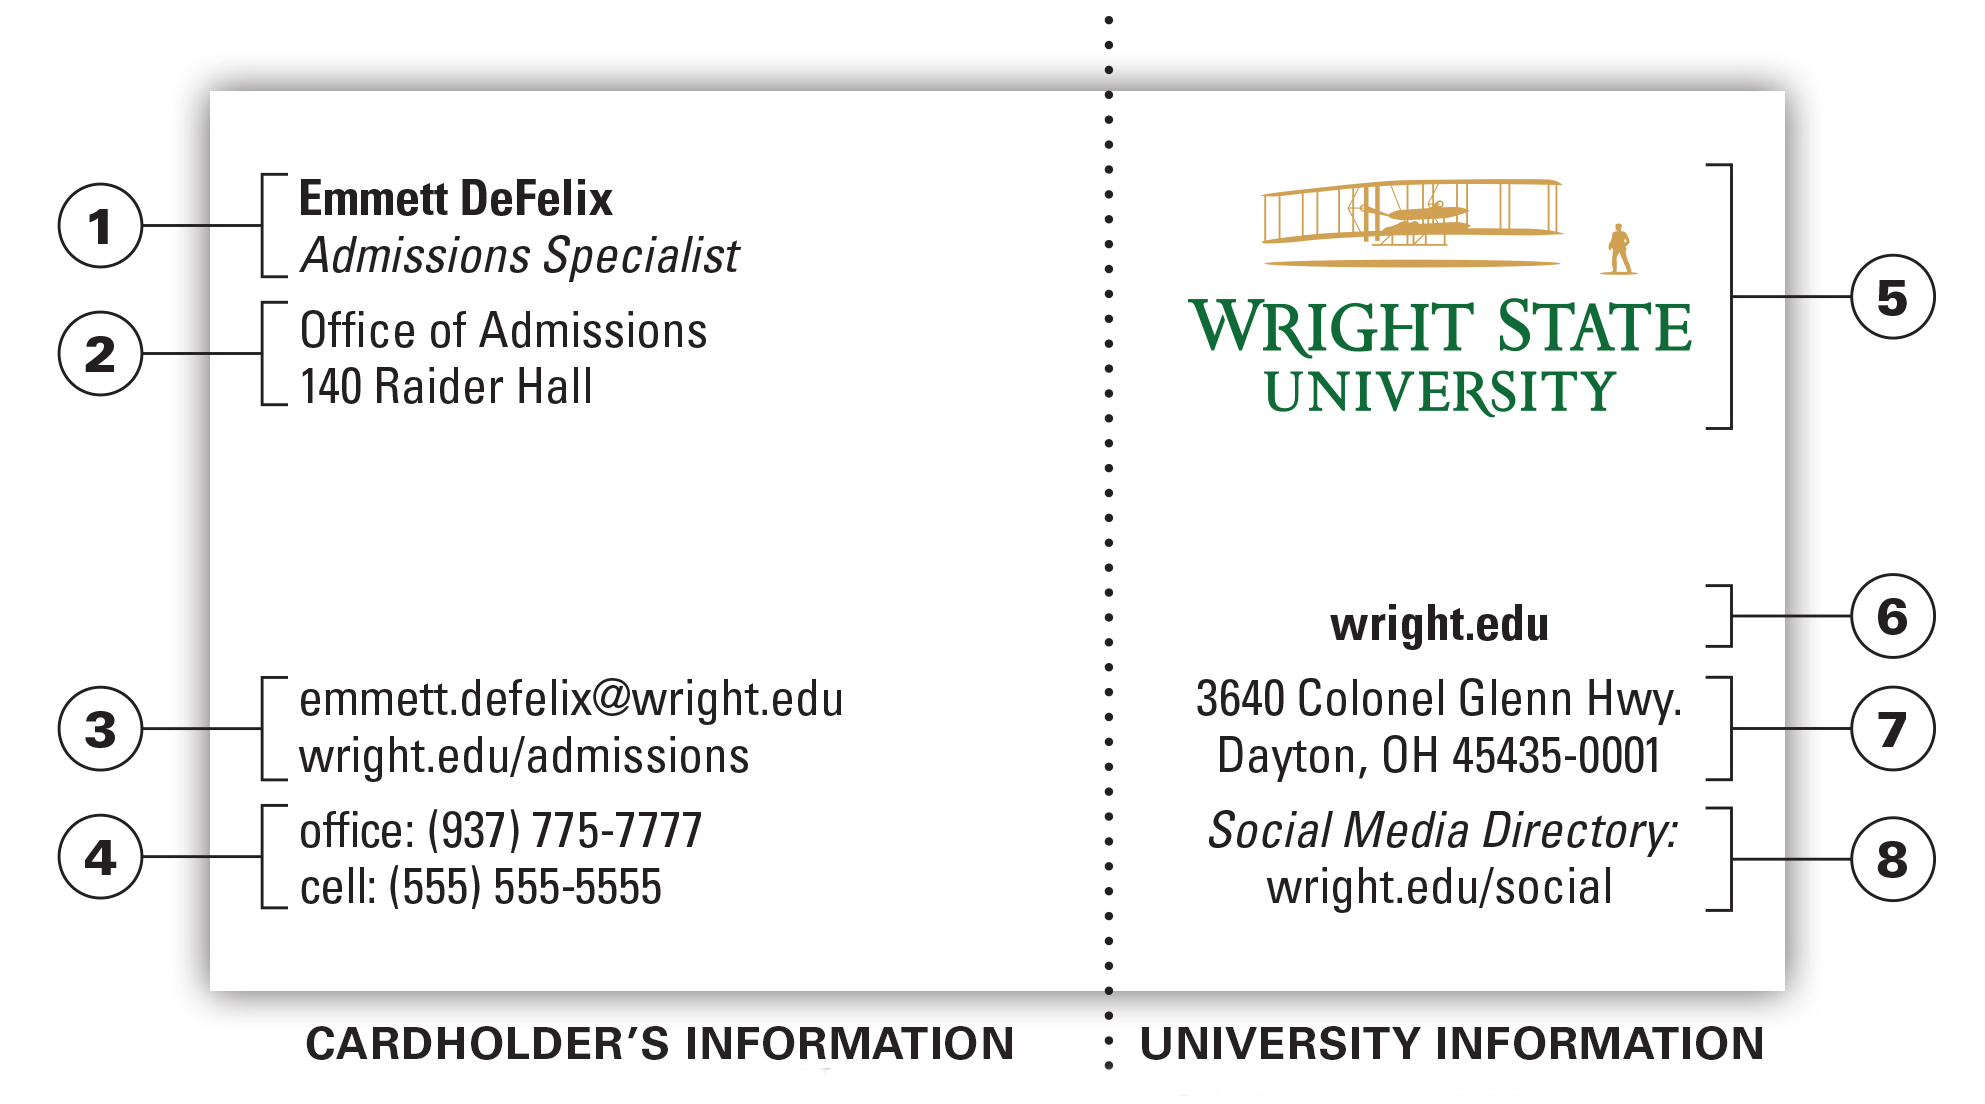 University business card office of marketing wright state university wright state university business card template fbccfo Choice Image